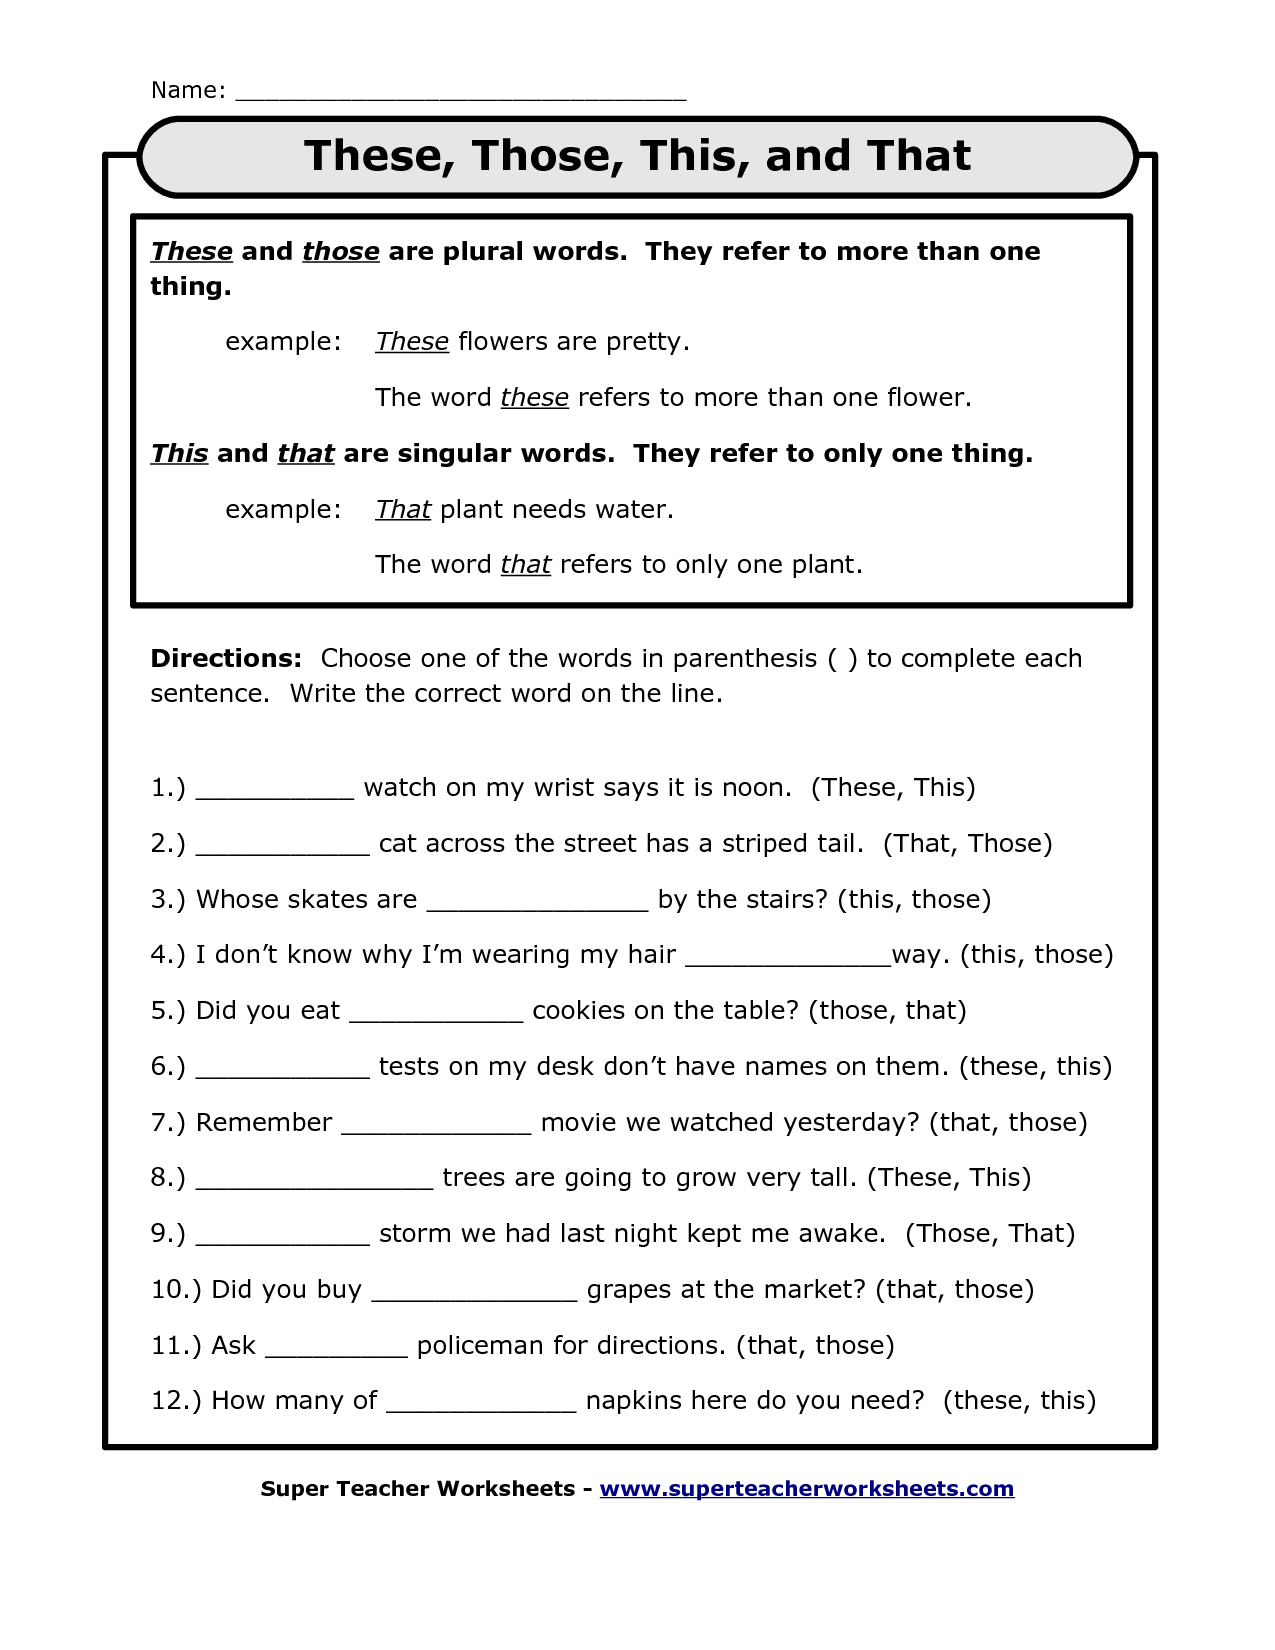 Pronoun Printouts This That These Those These Those This And